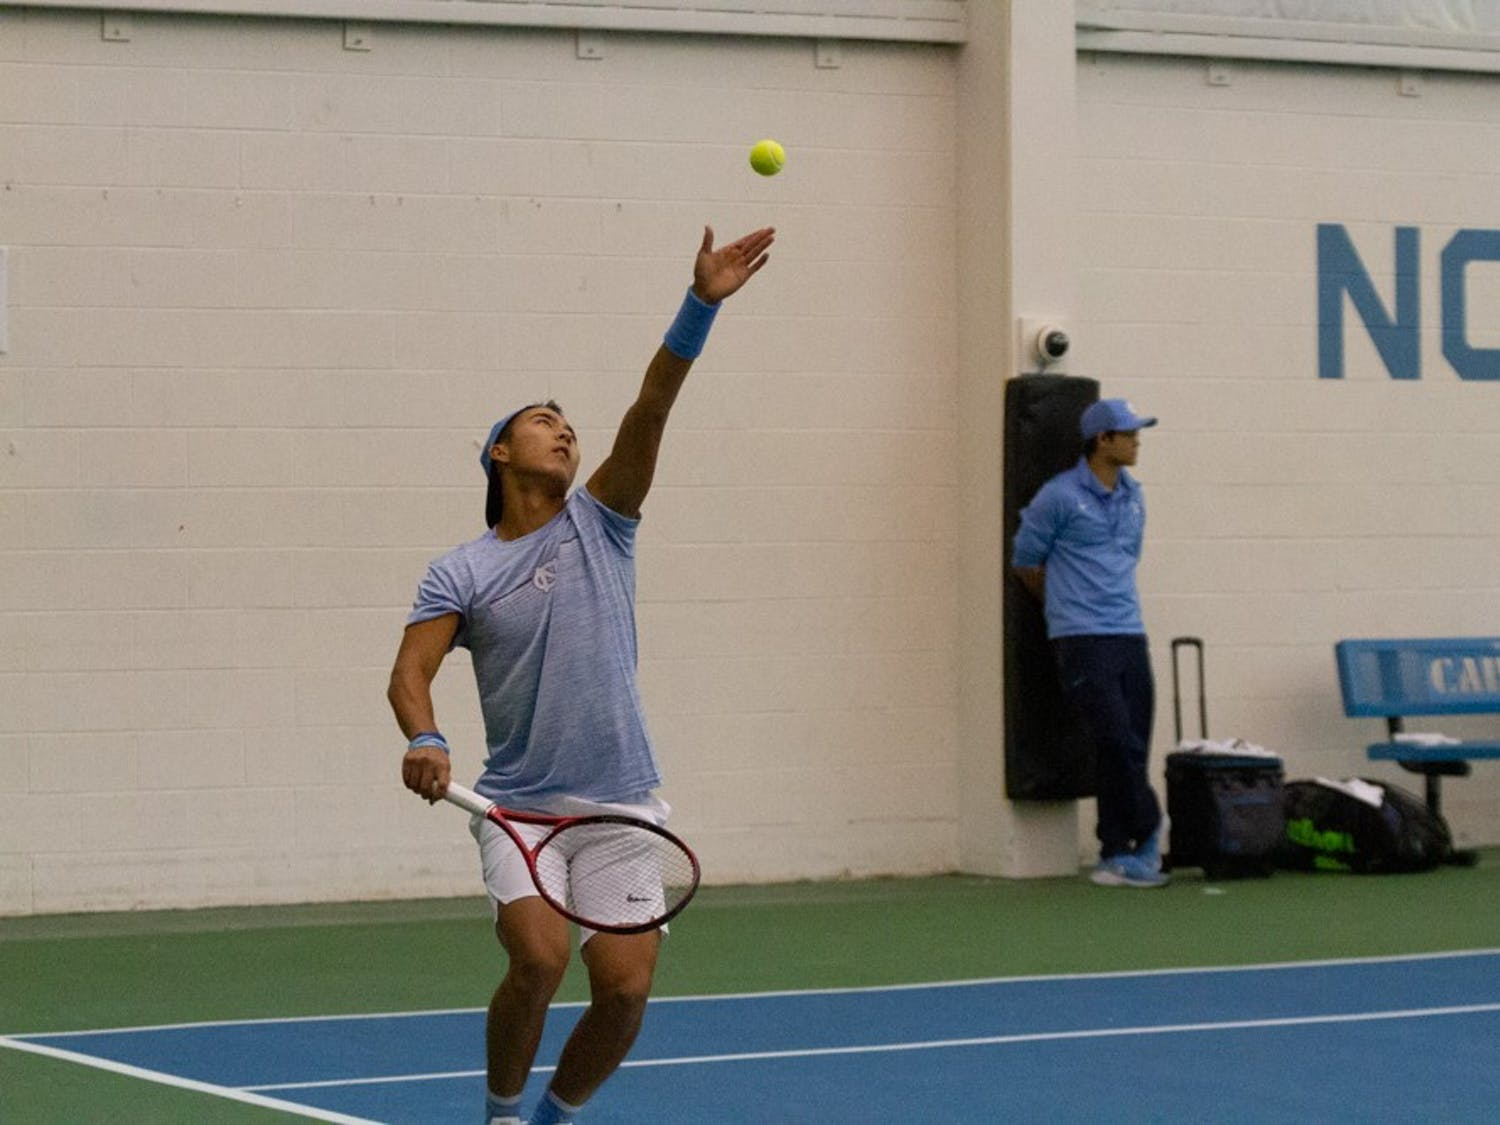 First-year tennis player Rinky Hijikata prepares to serve the ball against Vazha Shubladze and Diego Padilha of Georgia State during men's doubles in the Cone-Kenfield Tennis Center on Sunday, Jan. 26, 2020. Hijikata made his debut on Saturday, Jan. 25, 2020.